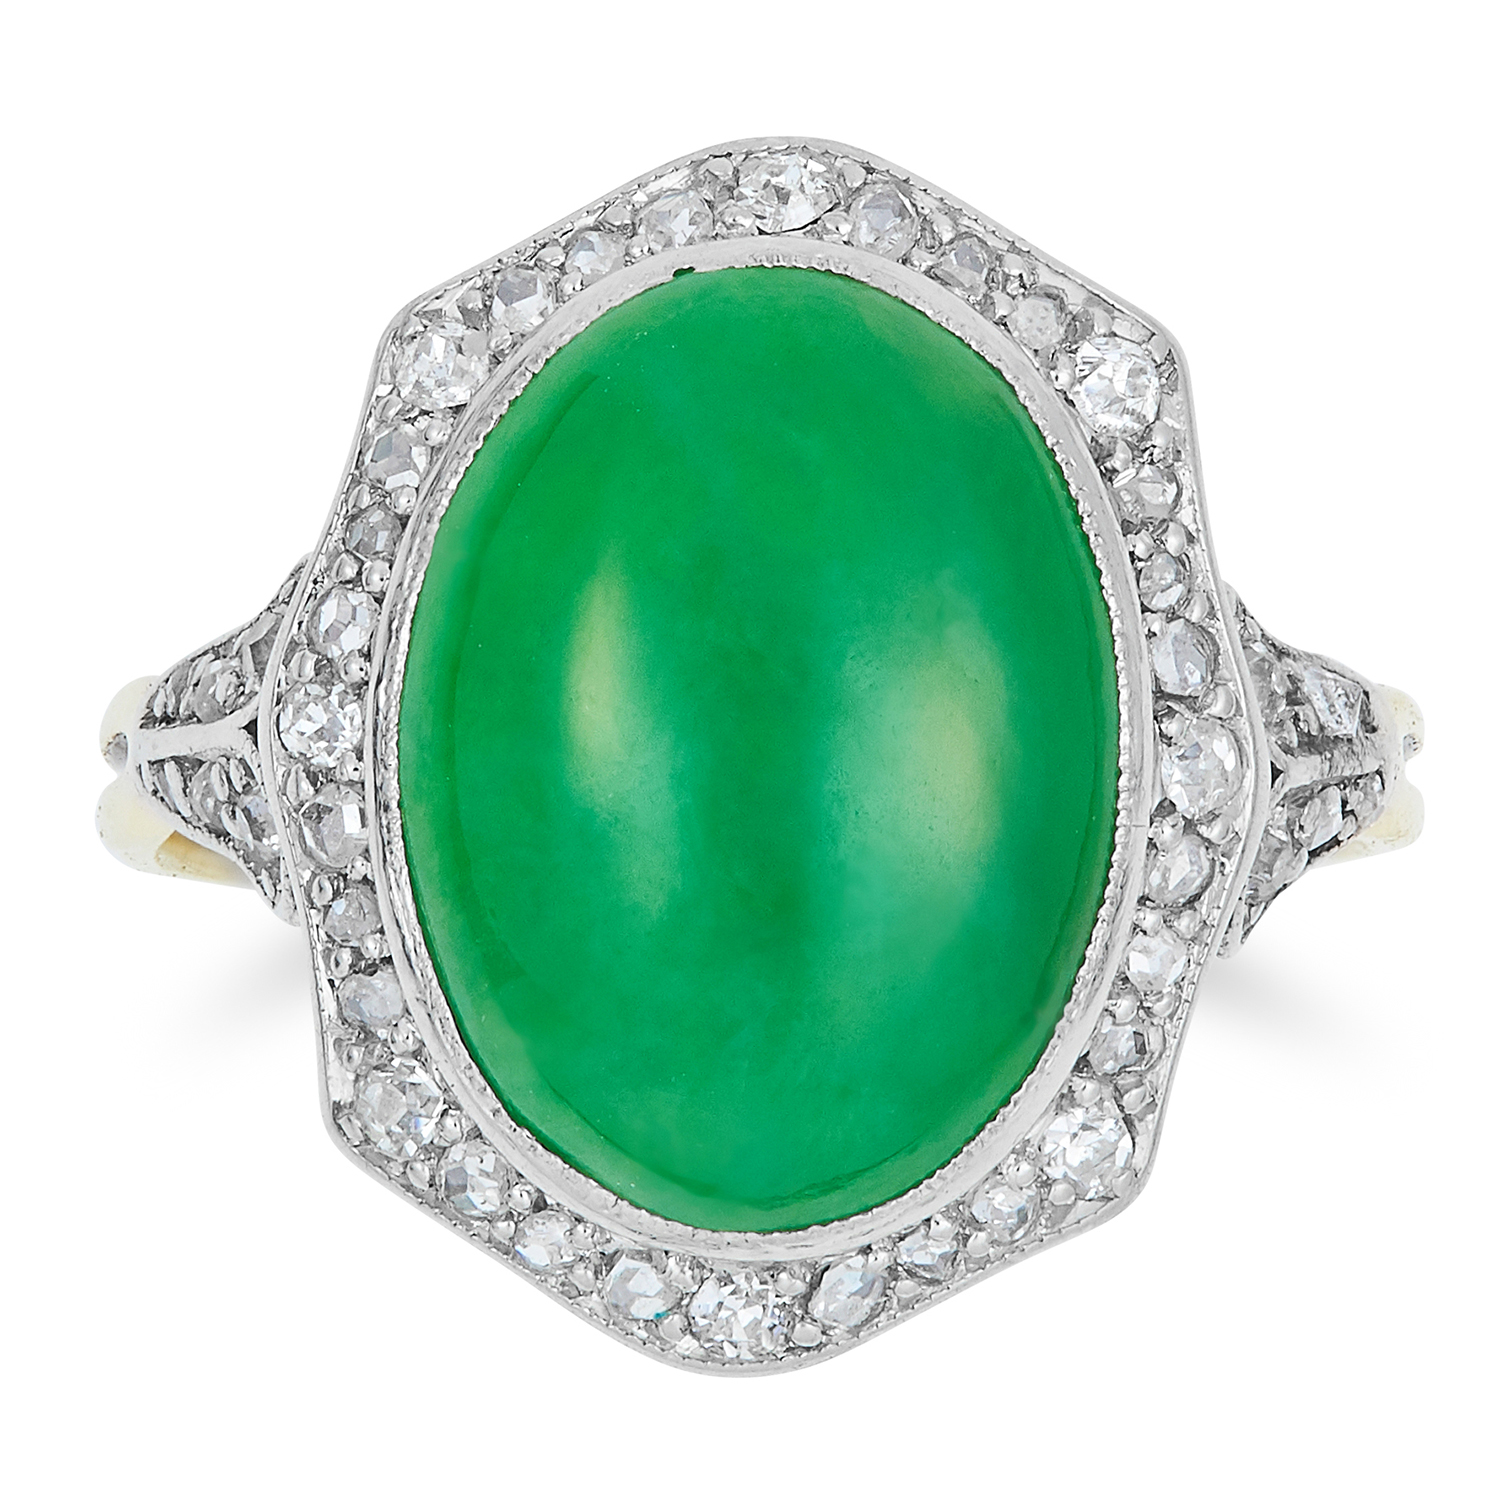 Los 637 - ART DECO JADE RING, set with a cabochon jade within a border of diamonds, size N / 6.5, 3.9g.